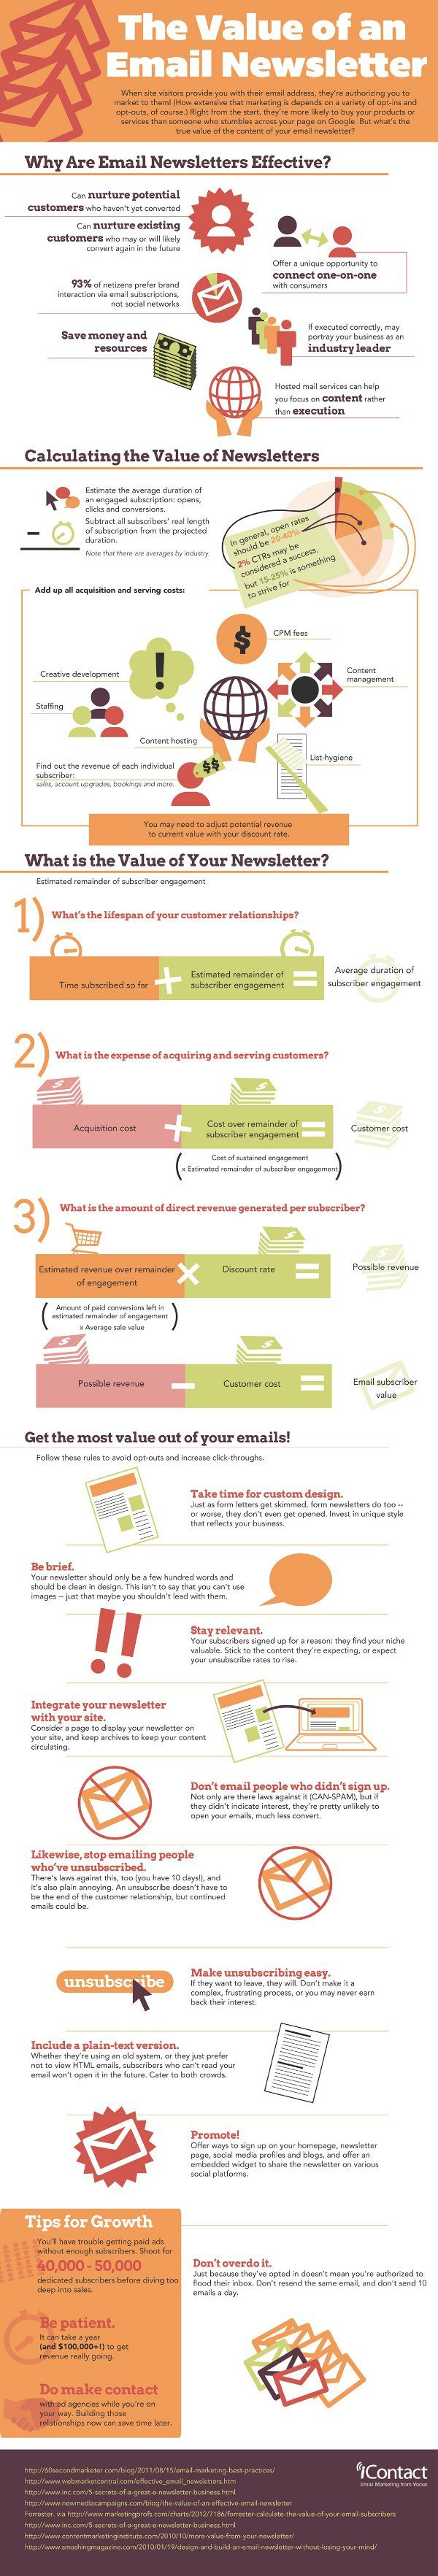 The value of an email newsletter #infographic